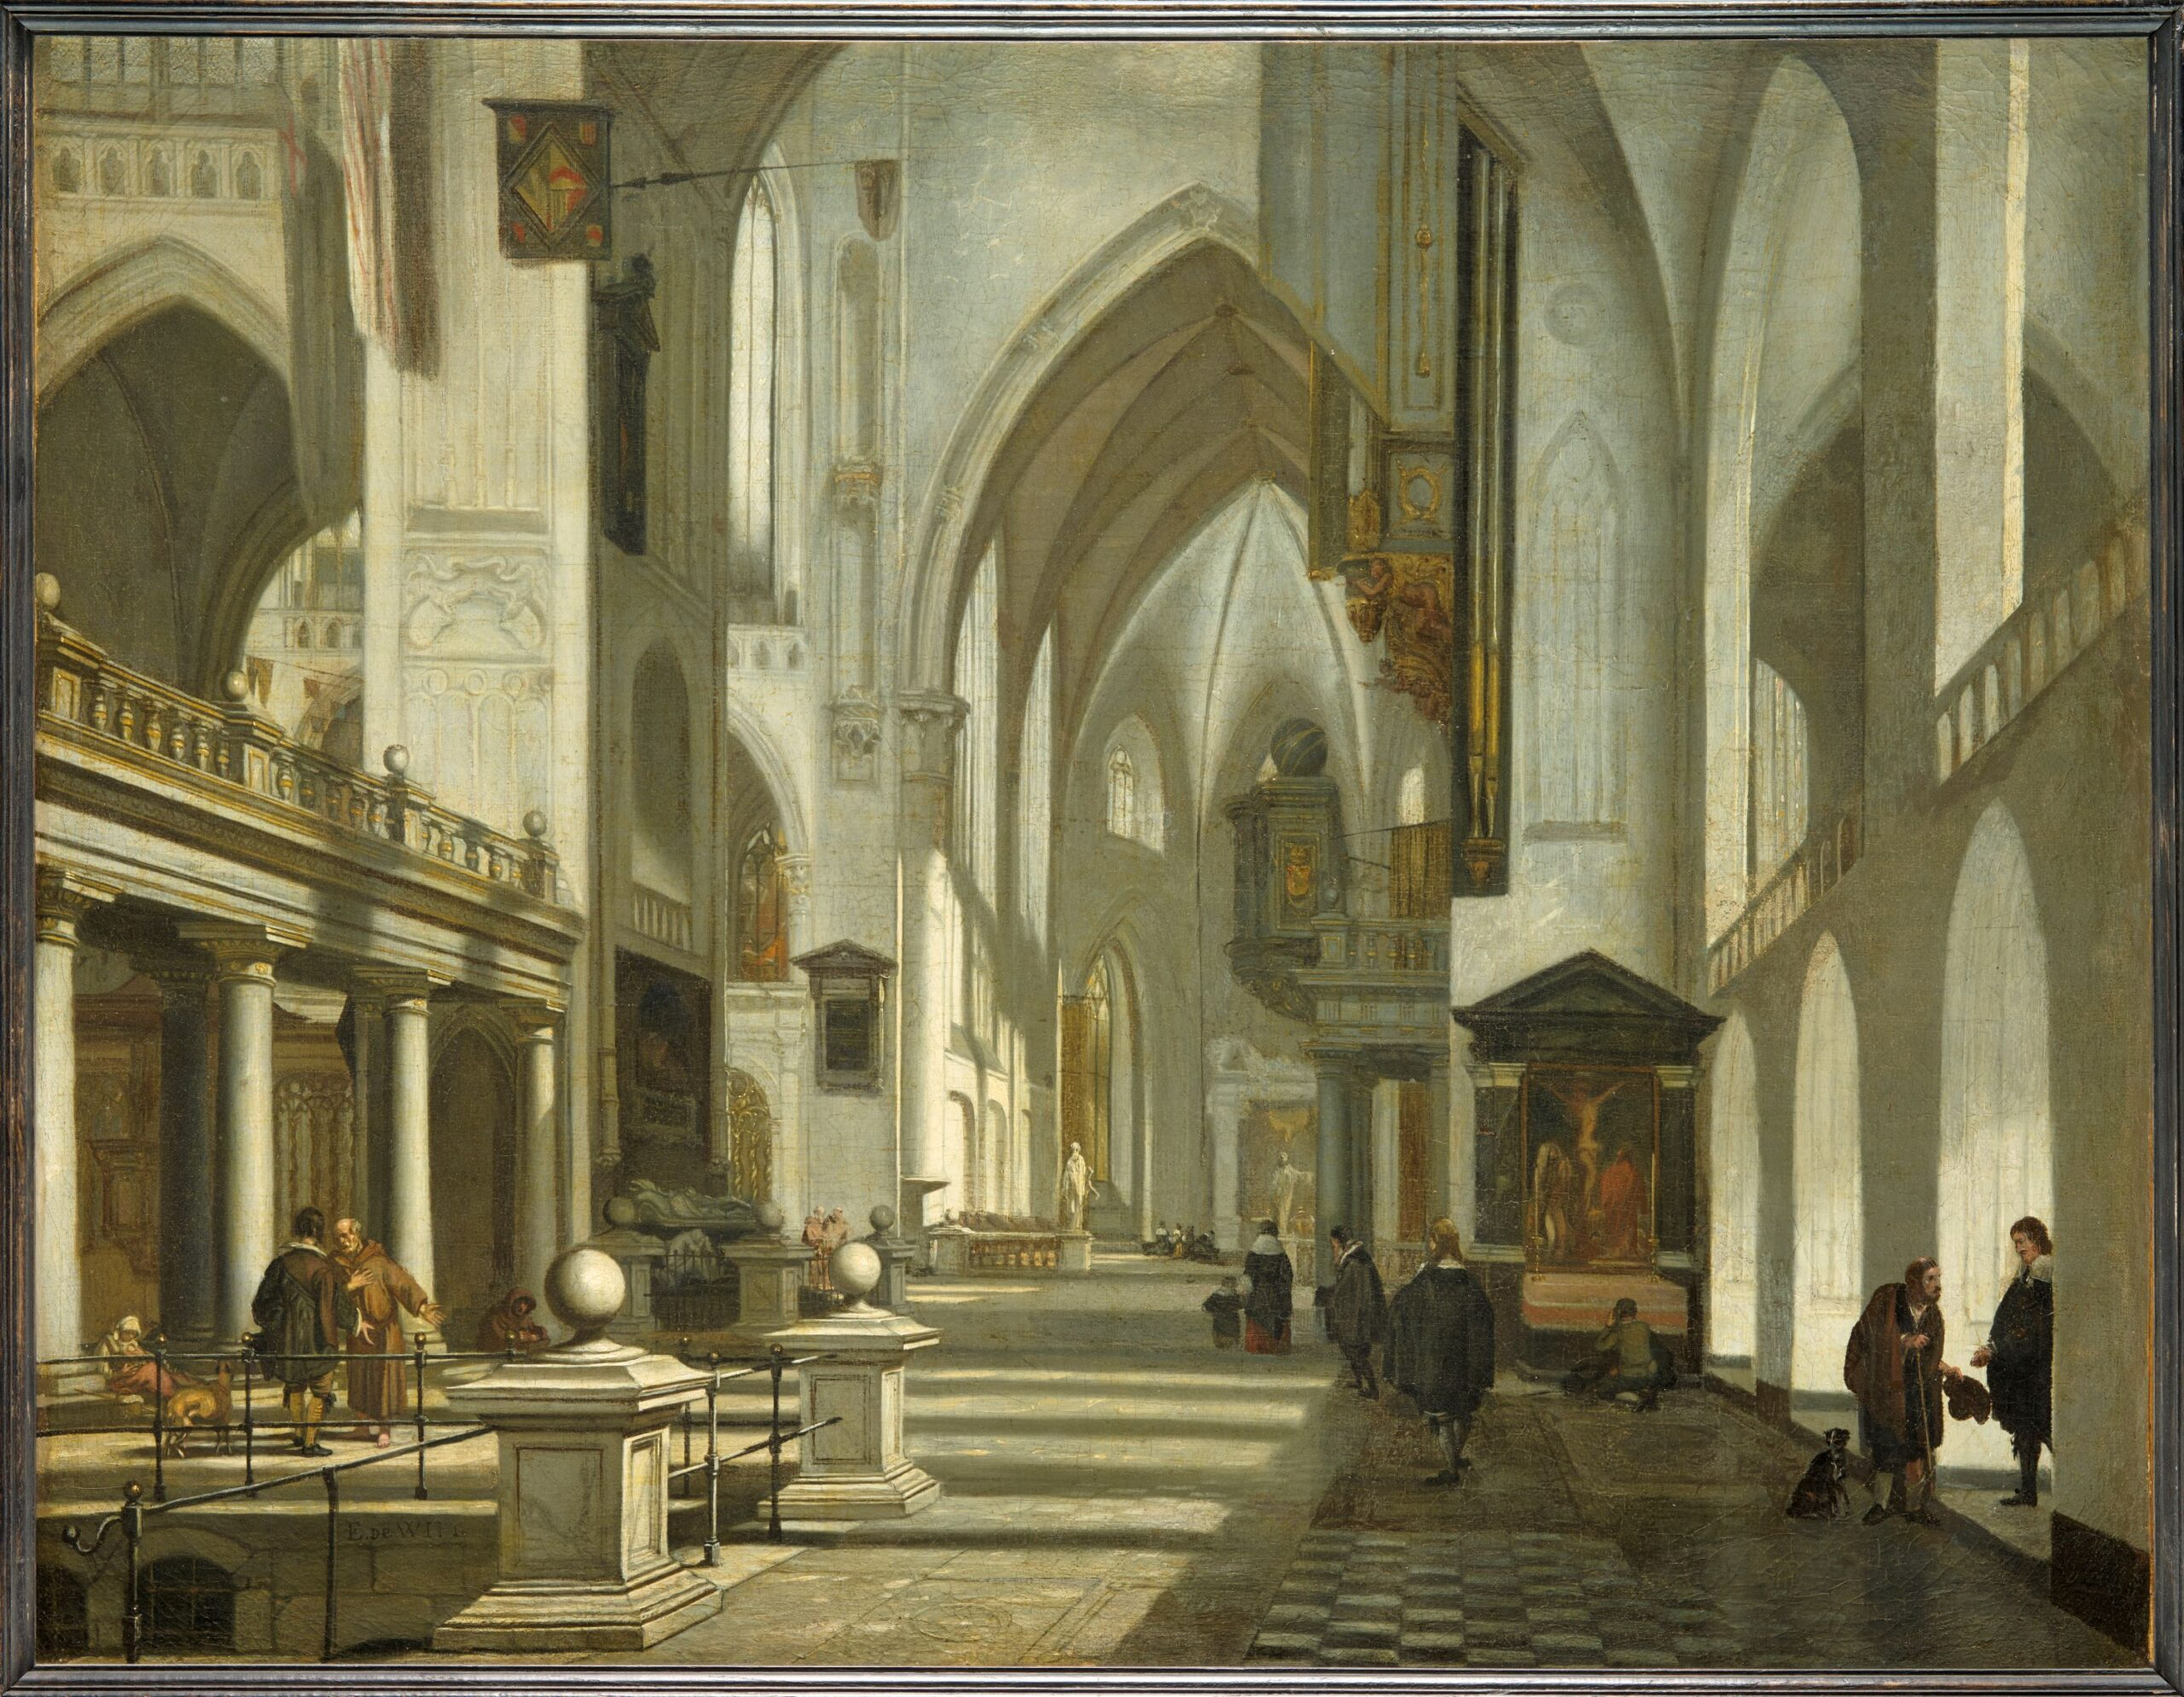 Fig. 7. Emanuel de Witte (1617–1692), Imaginary Church Interior with Monks, ca. 1660–1668, inv. MJA 363